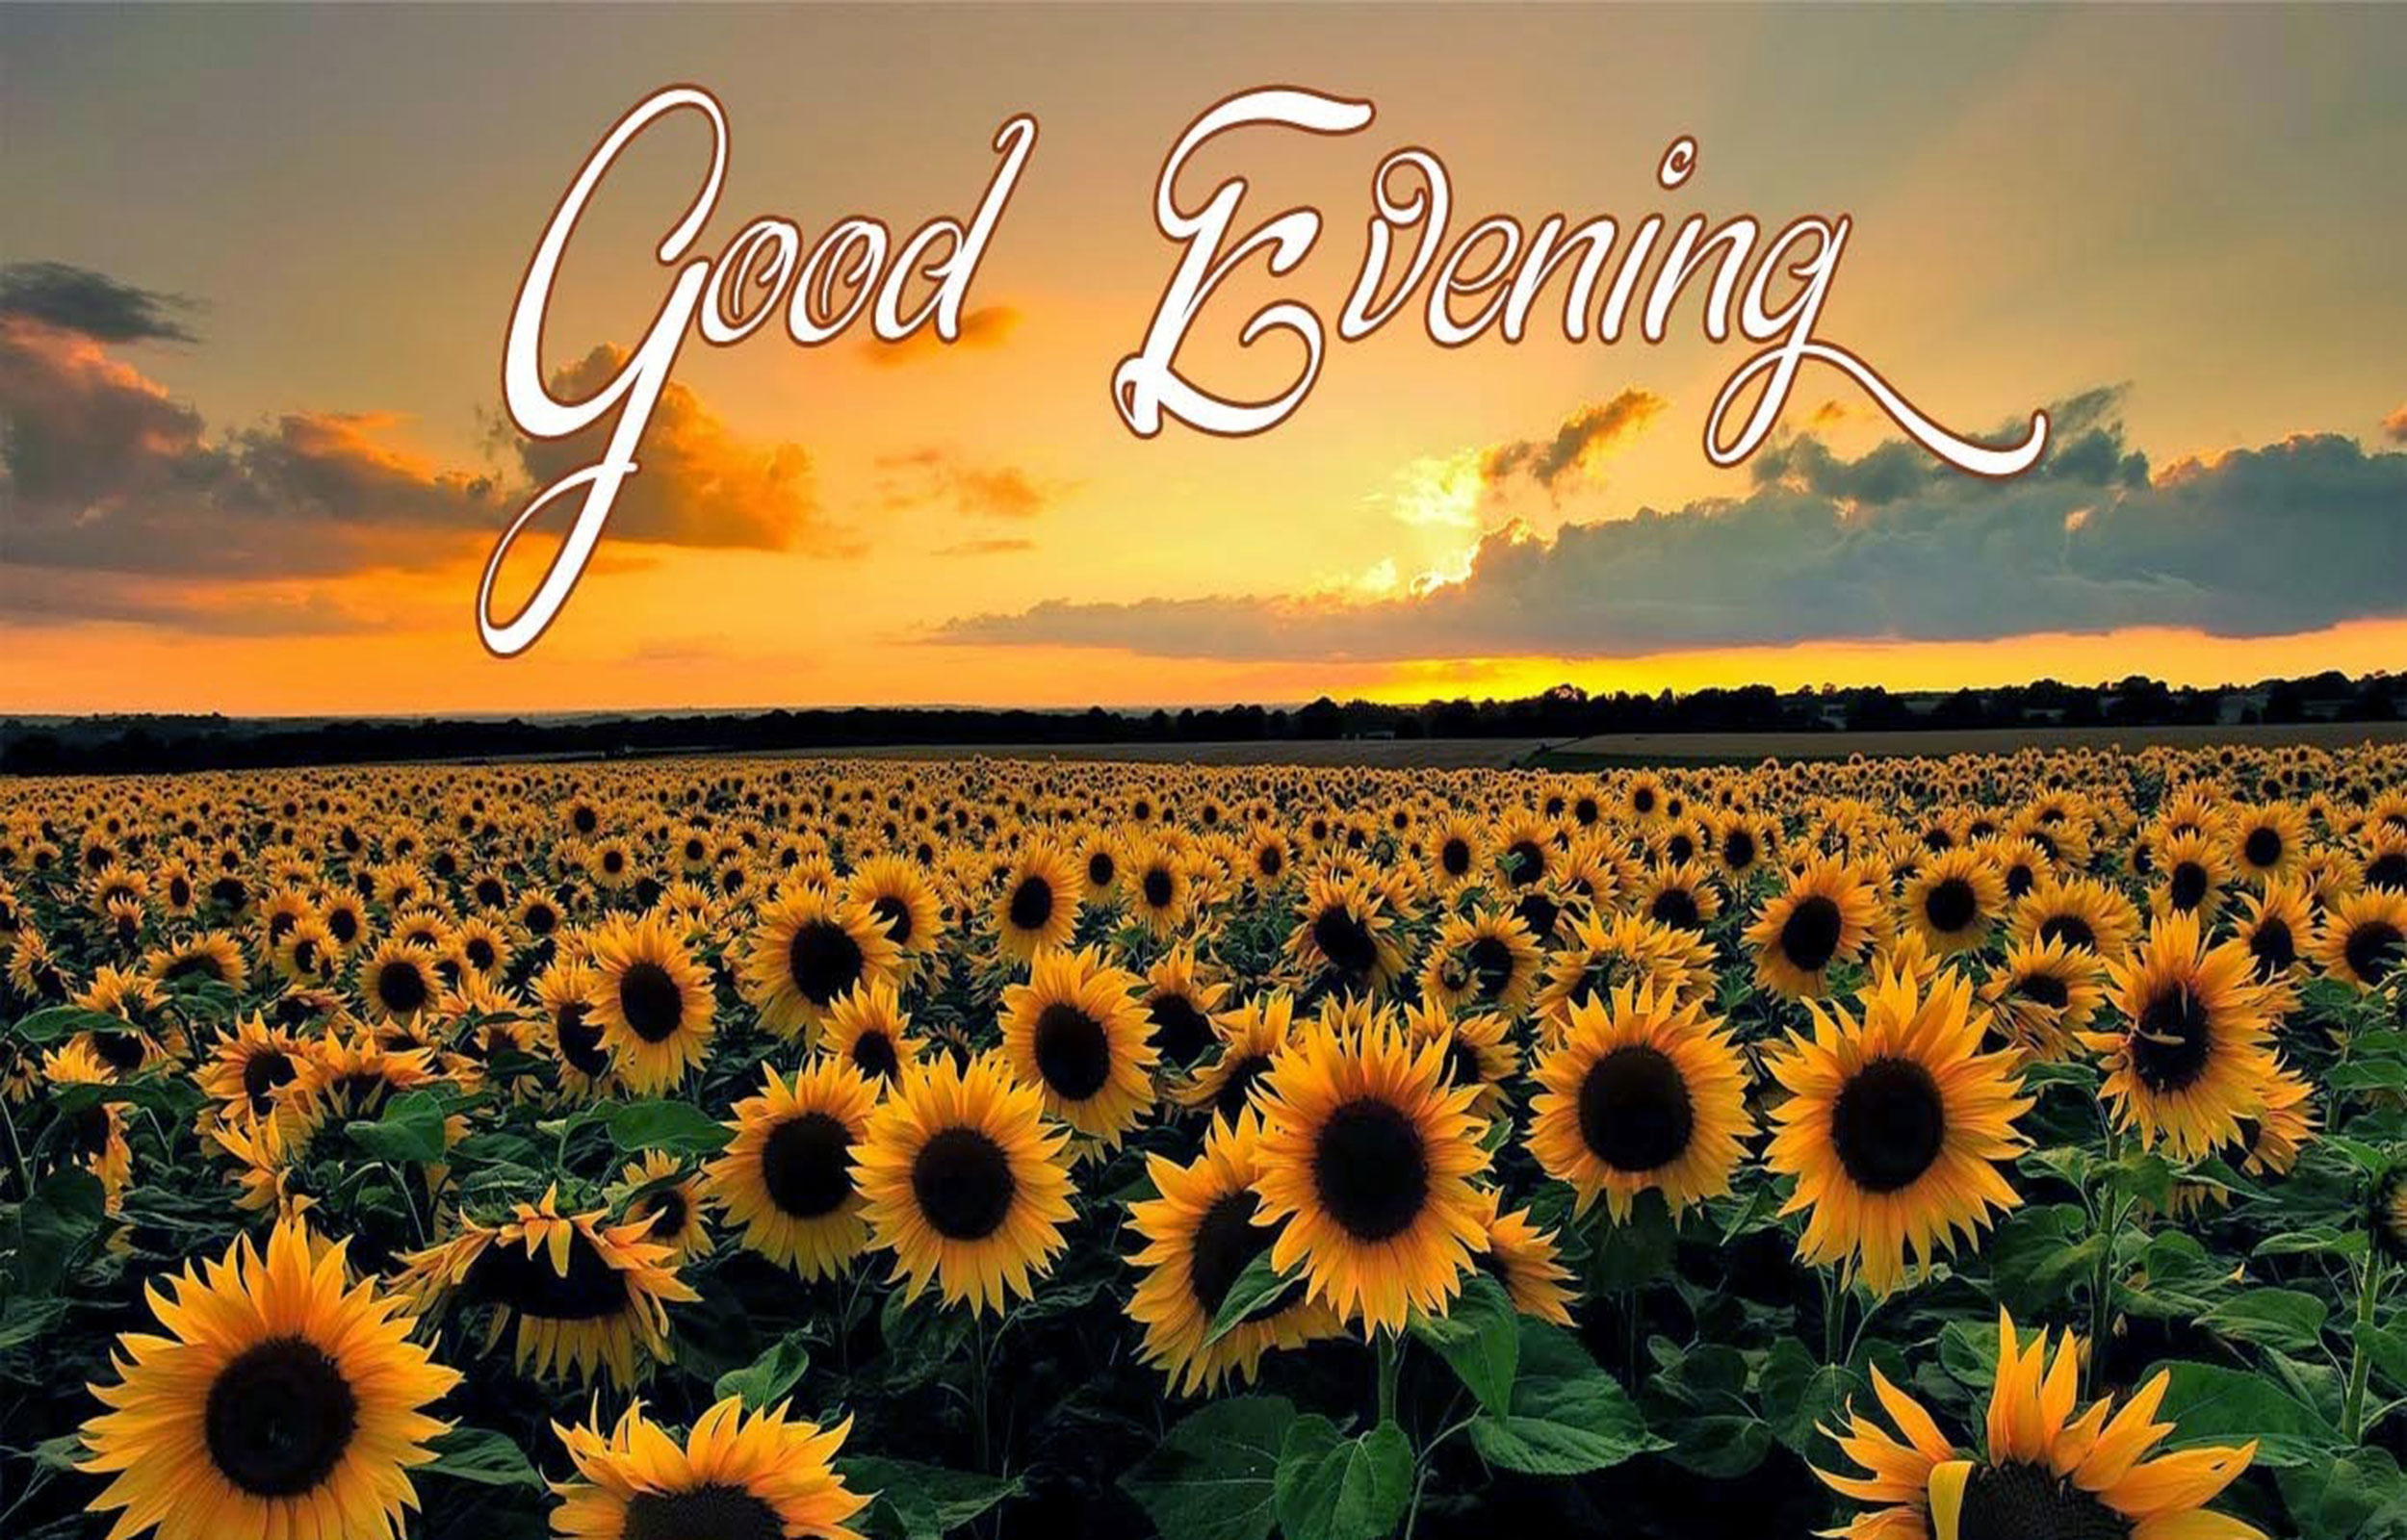 good evening sunflower garden